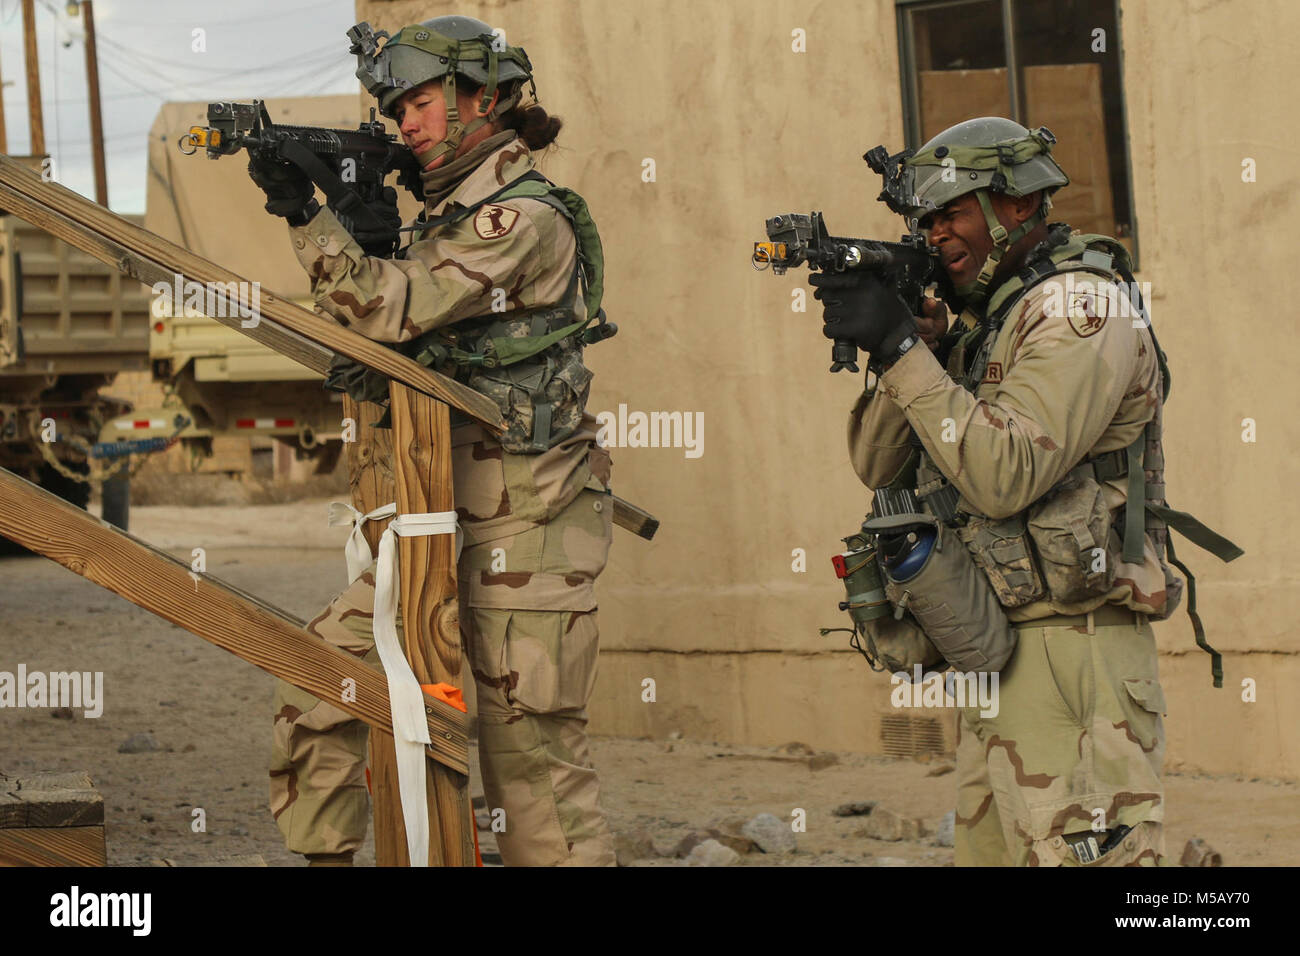 Fort Irwin Calif 11th Armored Cavalry Regiment Troopers Defend Stock Photo Alamy